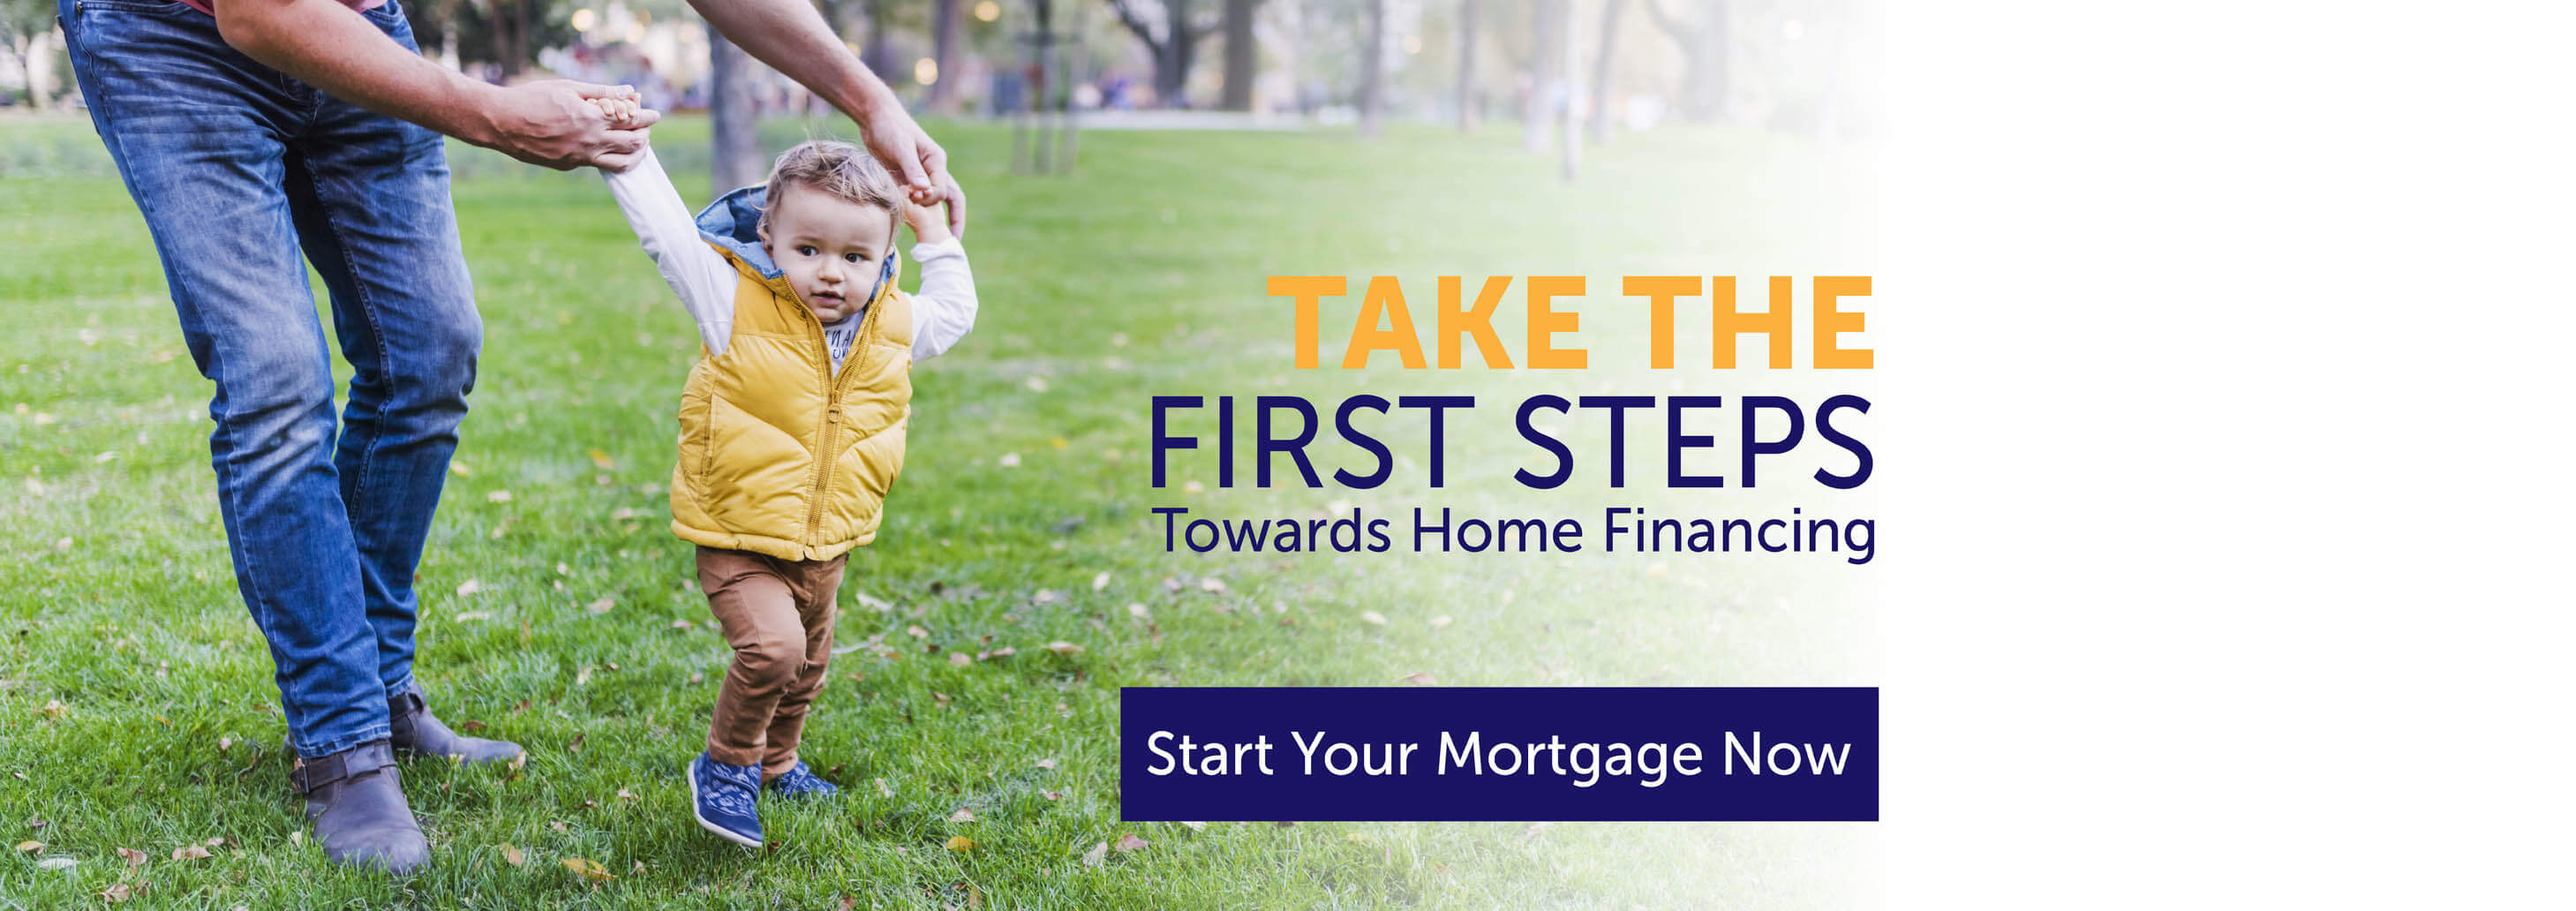 Capital Mortgage: Take the First Steps Towards Home Financing. Start your mortgage now.